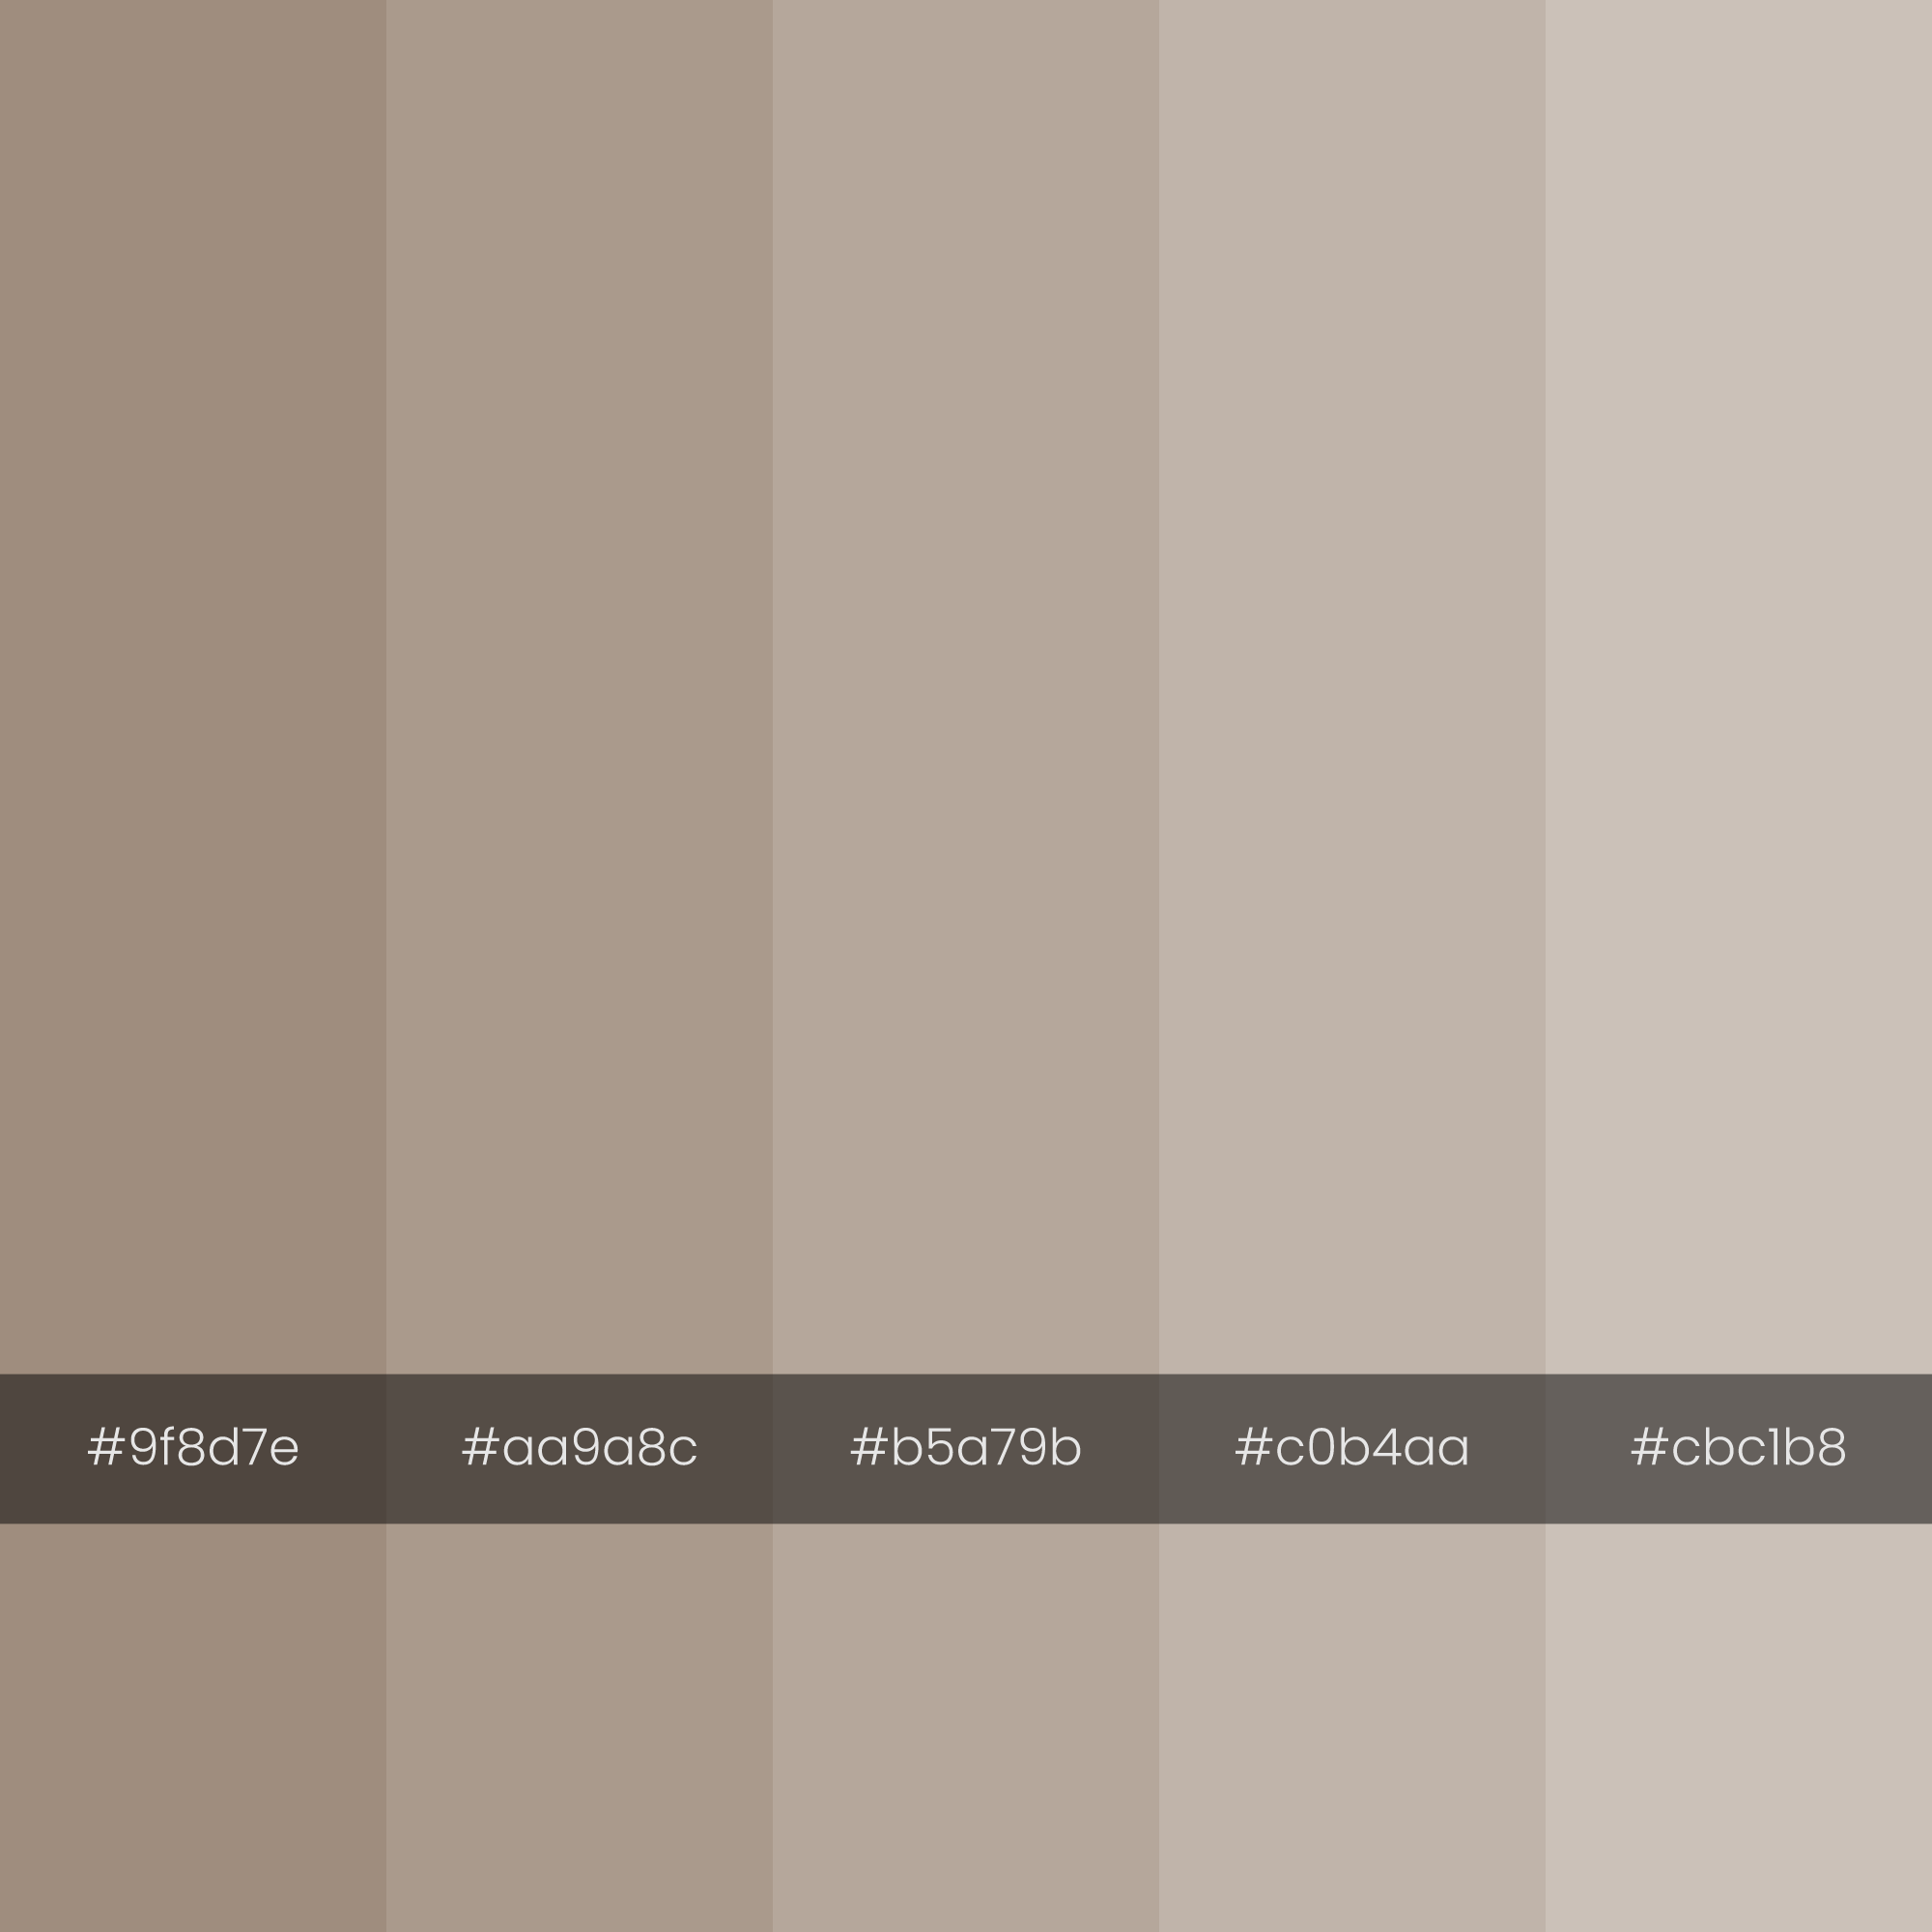 color-palette-2000-2000-cave-dust-monochrome